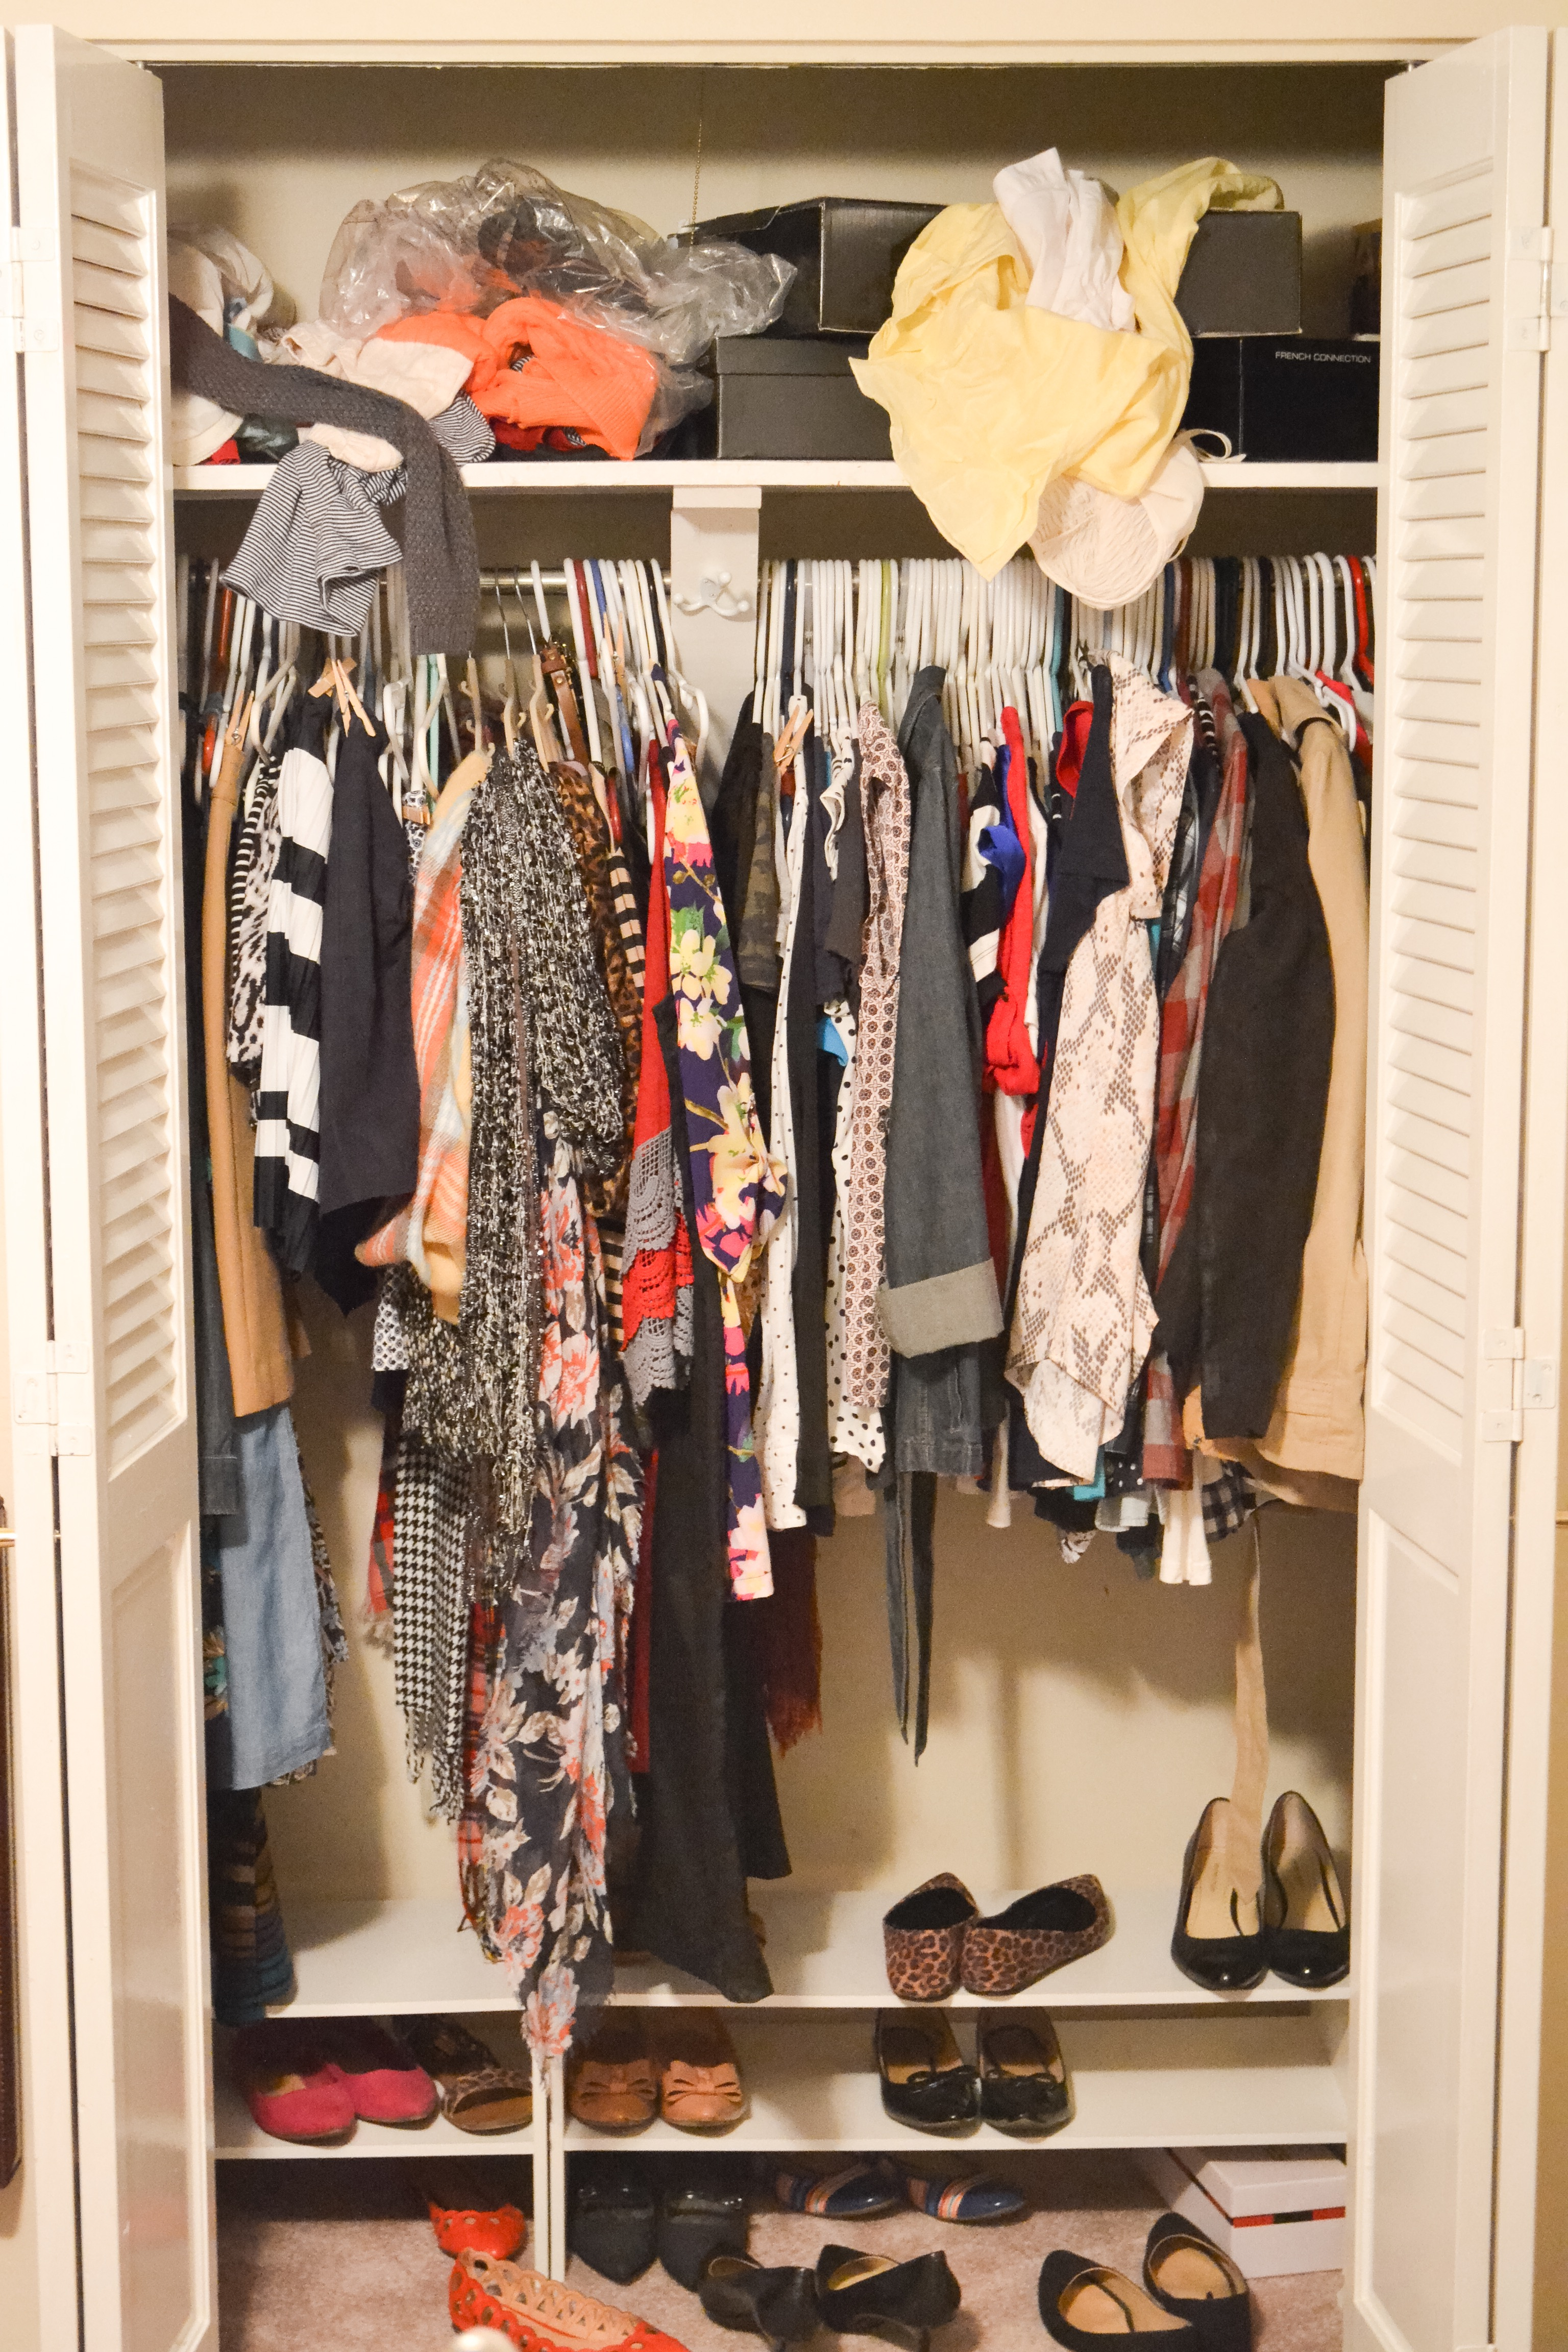 Cluttered Closet Before Starting a Capsule Wardrobe